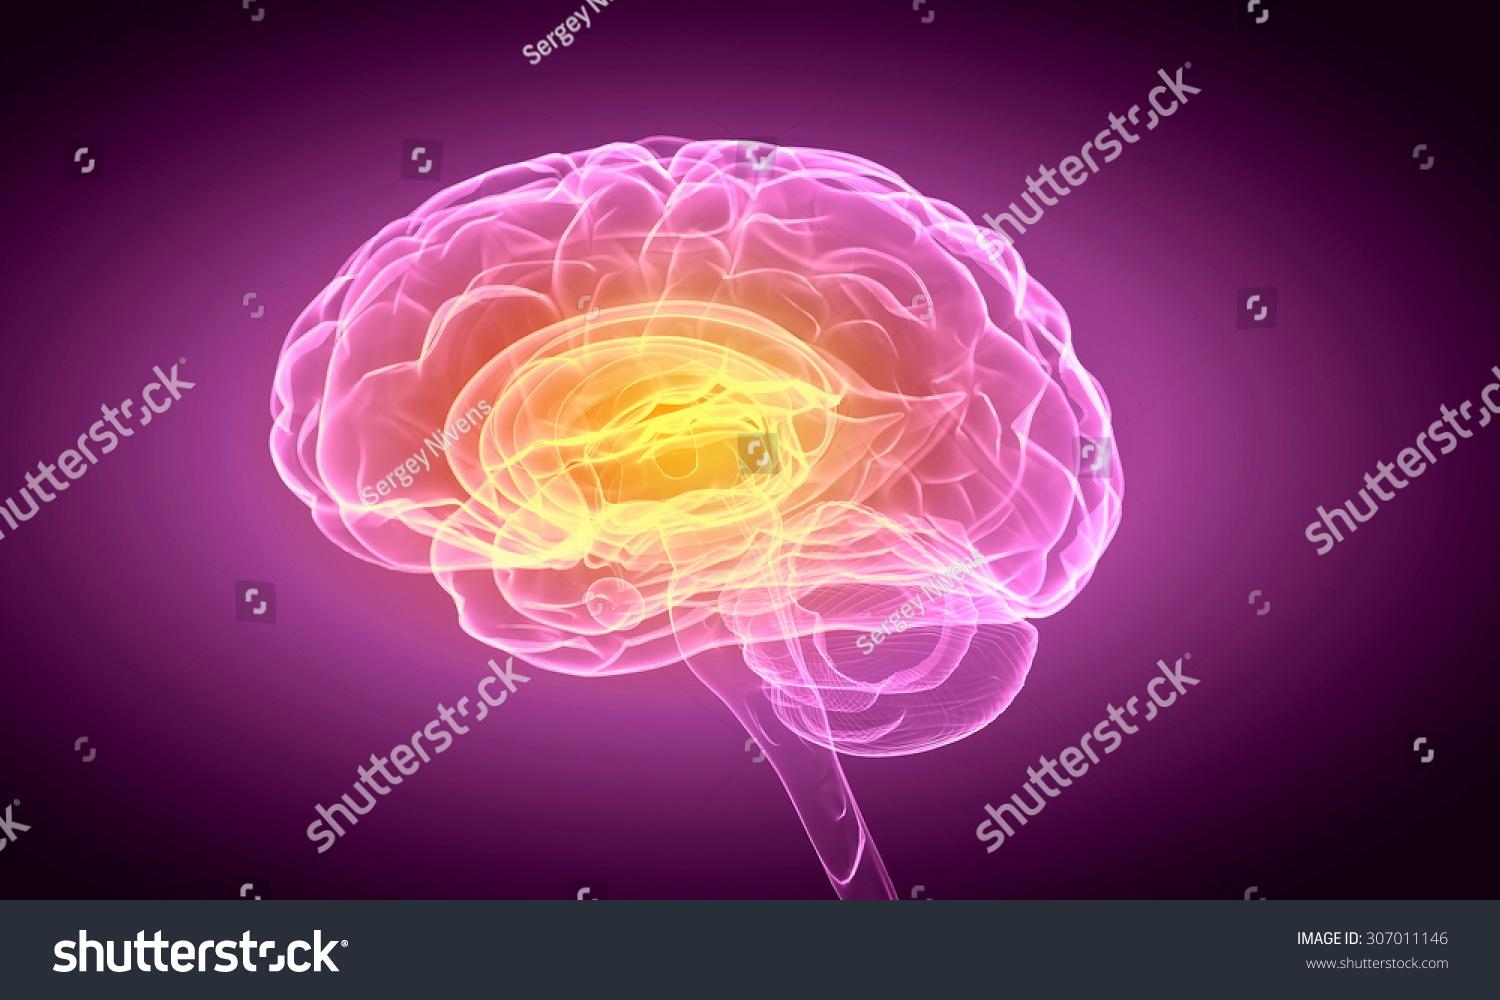 The Best Exercises To Improve Brain Function